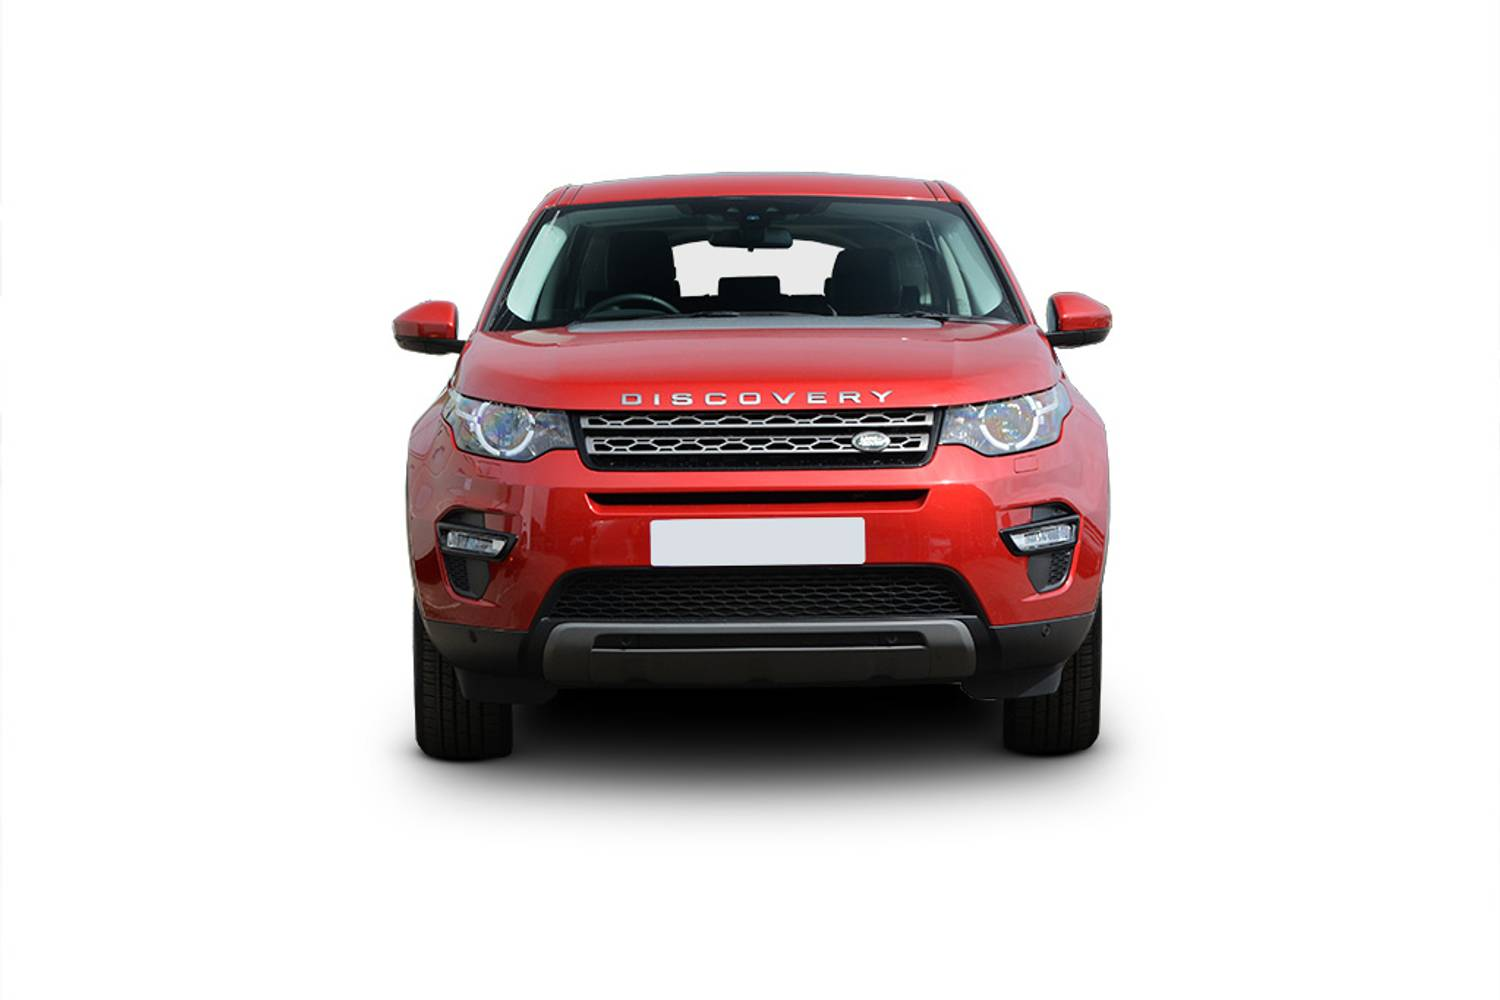 new land rover discovery   bing images